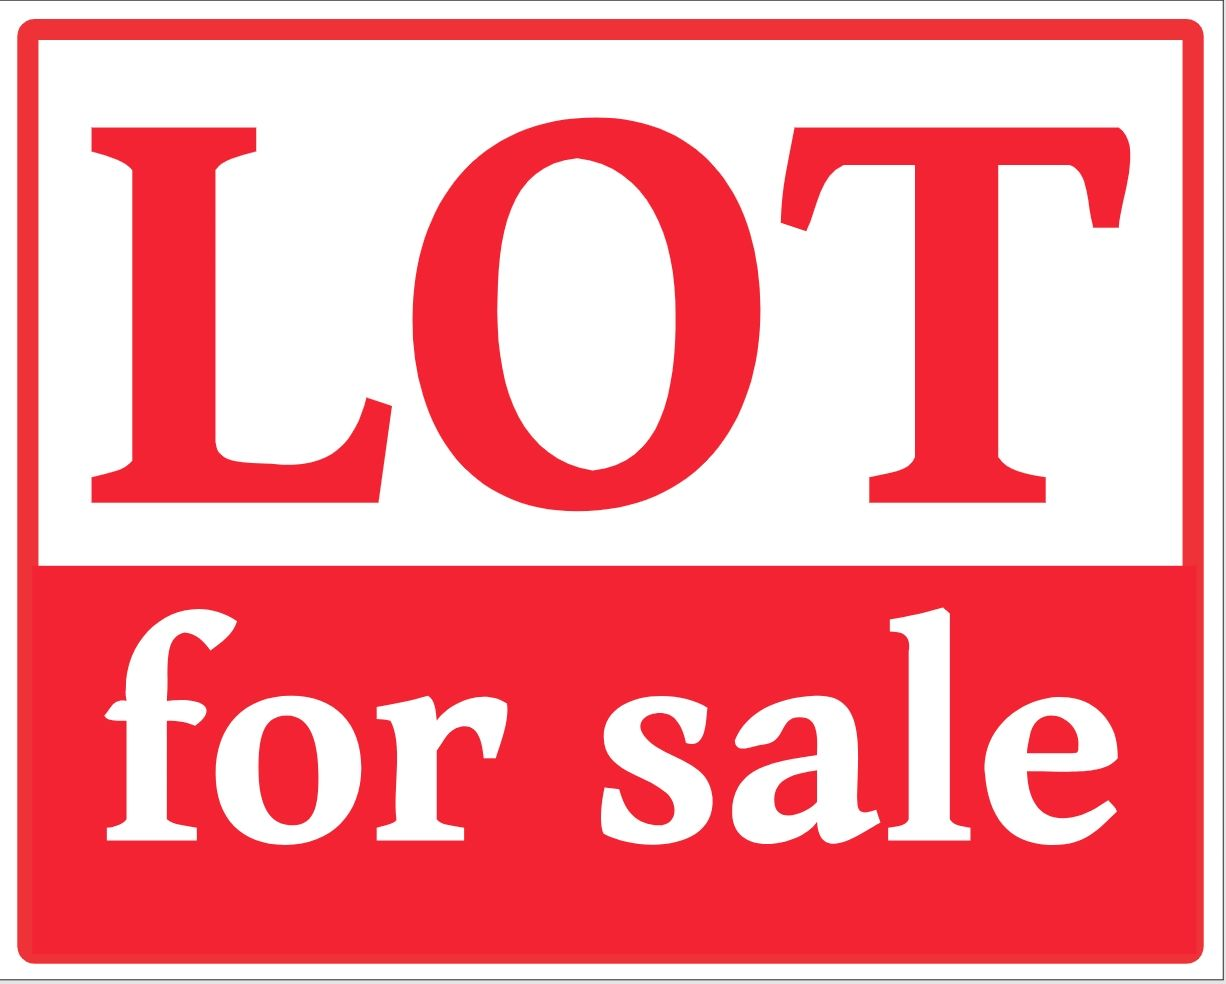 Main Photo: Lot 3 Porters Lake Station Road in Porters Lake: 31-Lawrencetown, Lake Echo, Porters Lake Vacant Land for sale (Halifax-Dartmouth)  : MLS®# 202107260